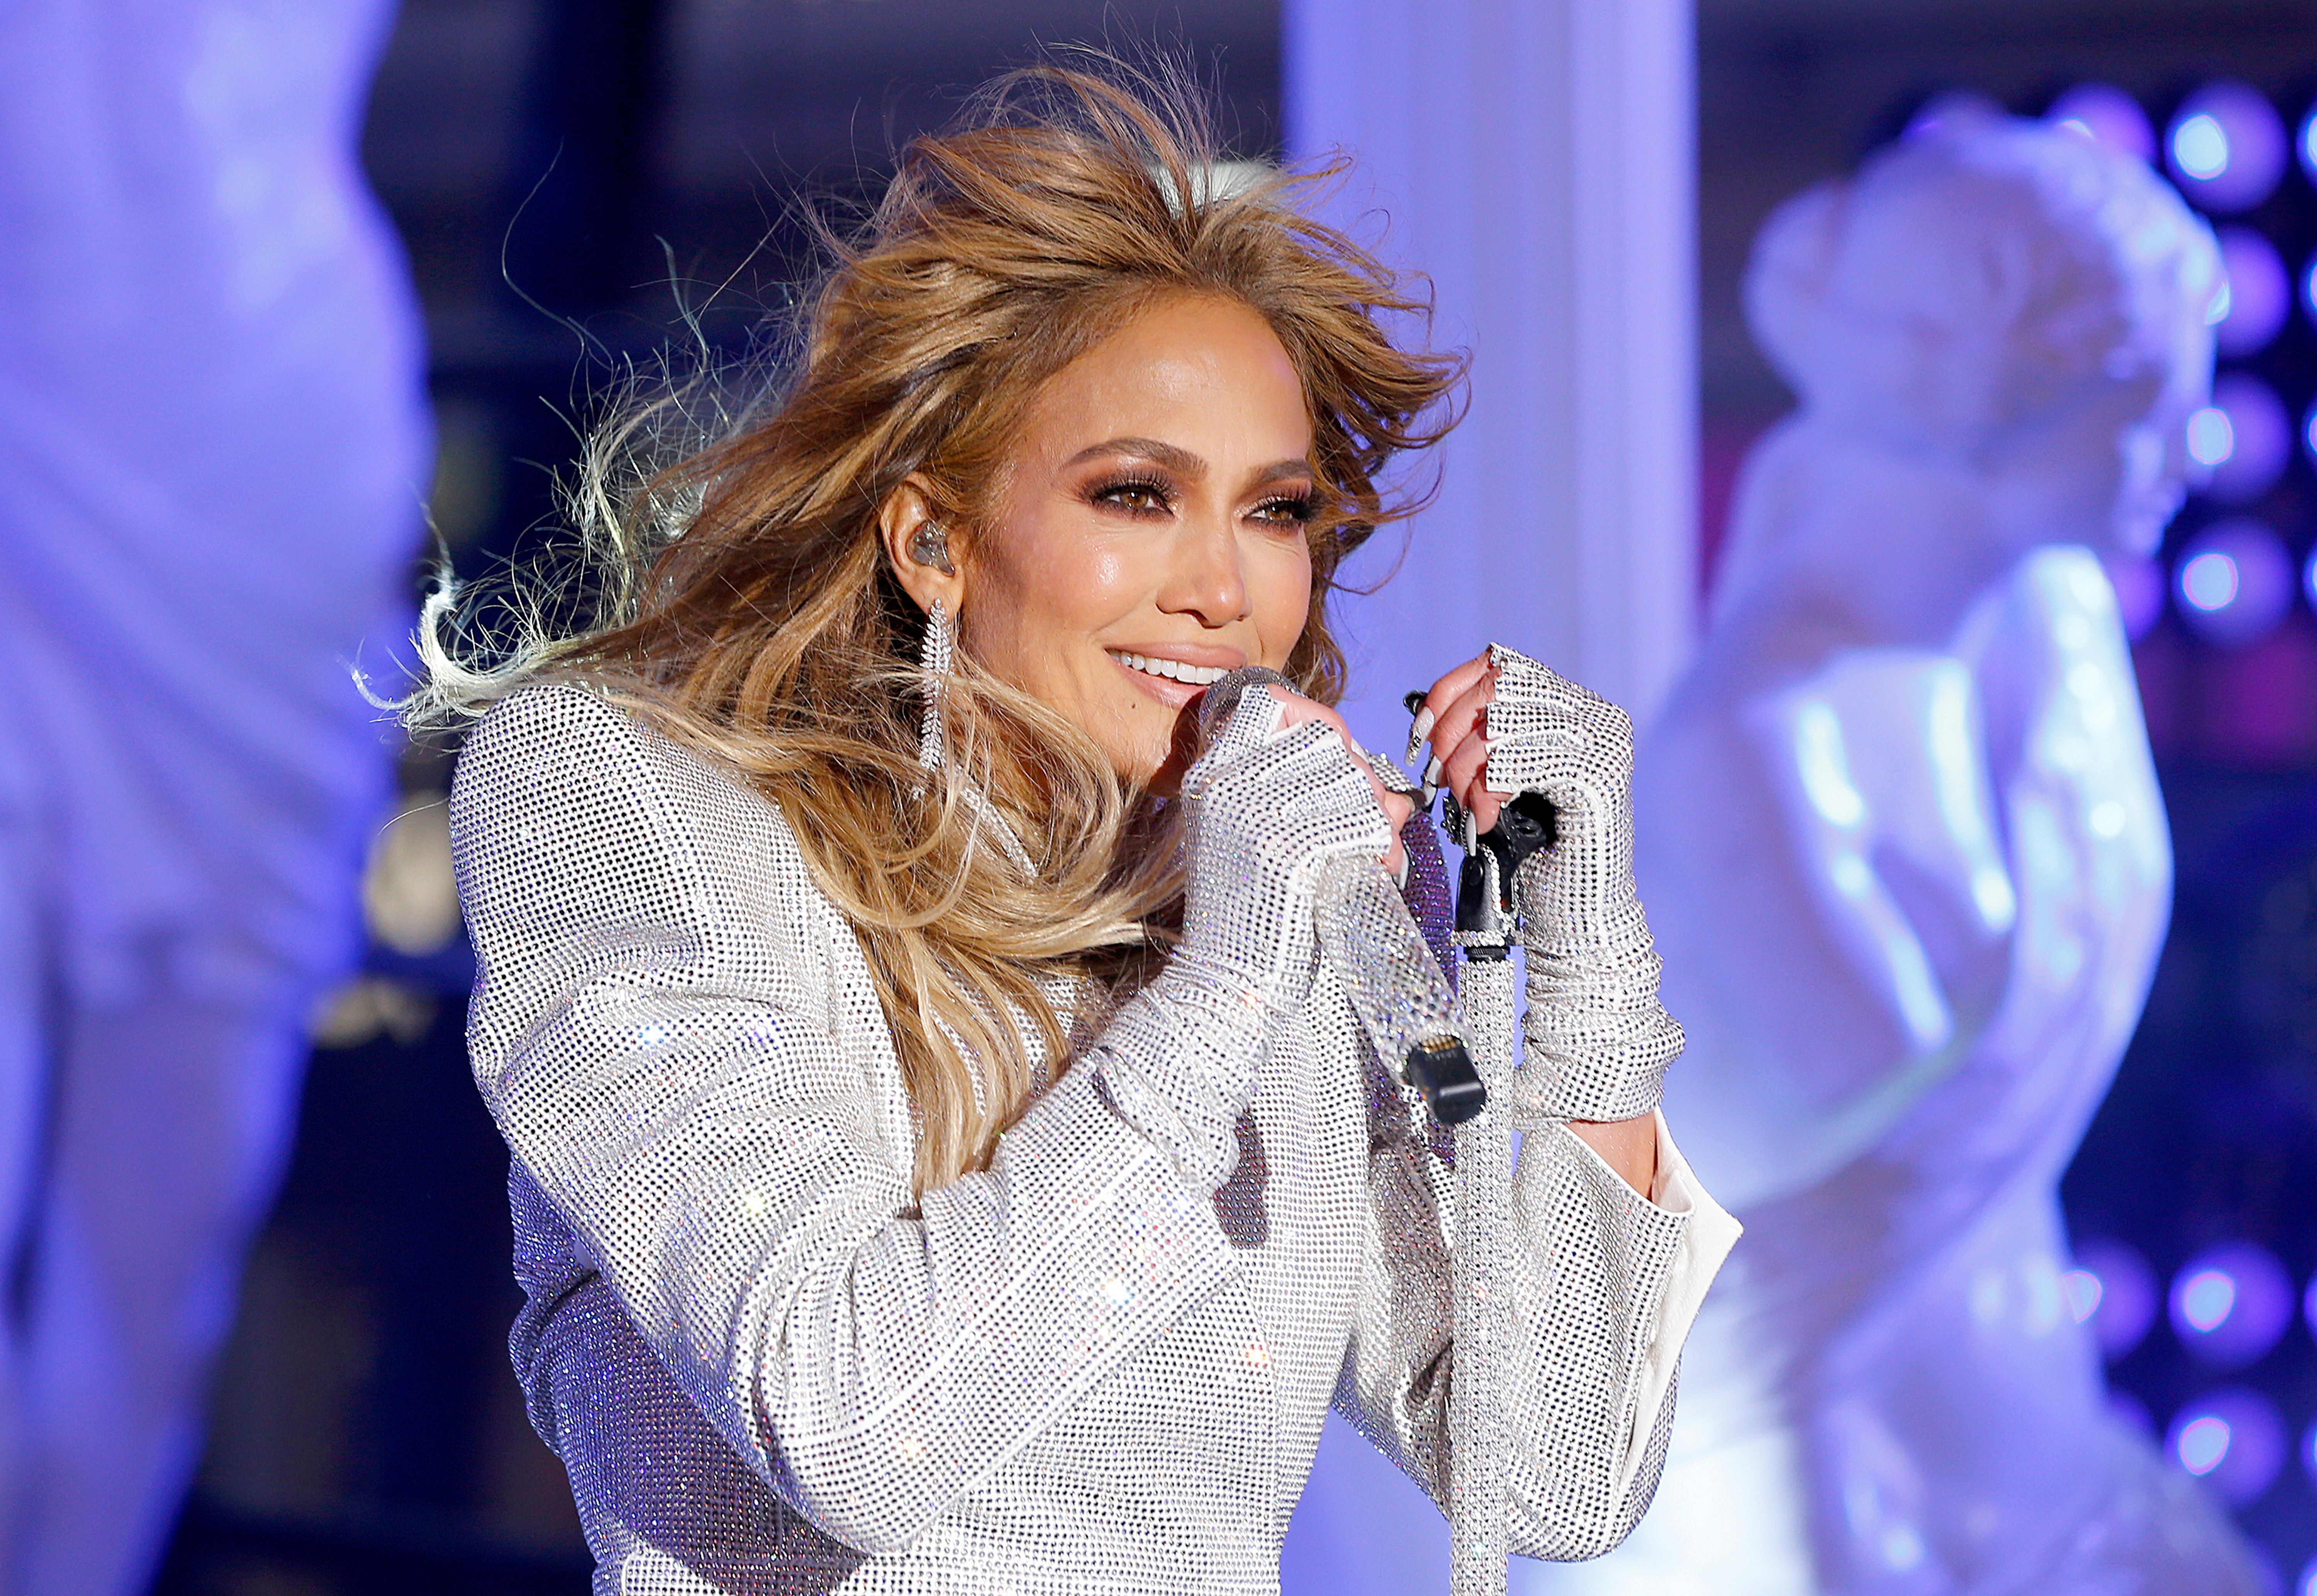 Jennifer Lopez performs live from Times Square at 2021 New Year's Eve celebrations on December 31, 2020 | Photo: Getty Images